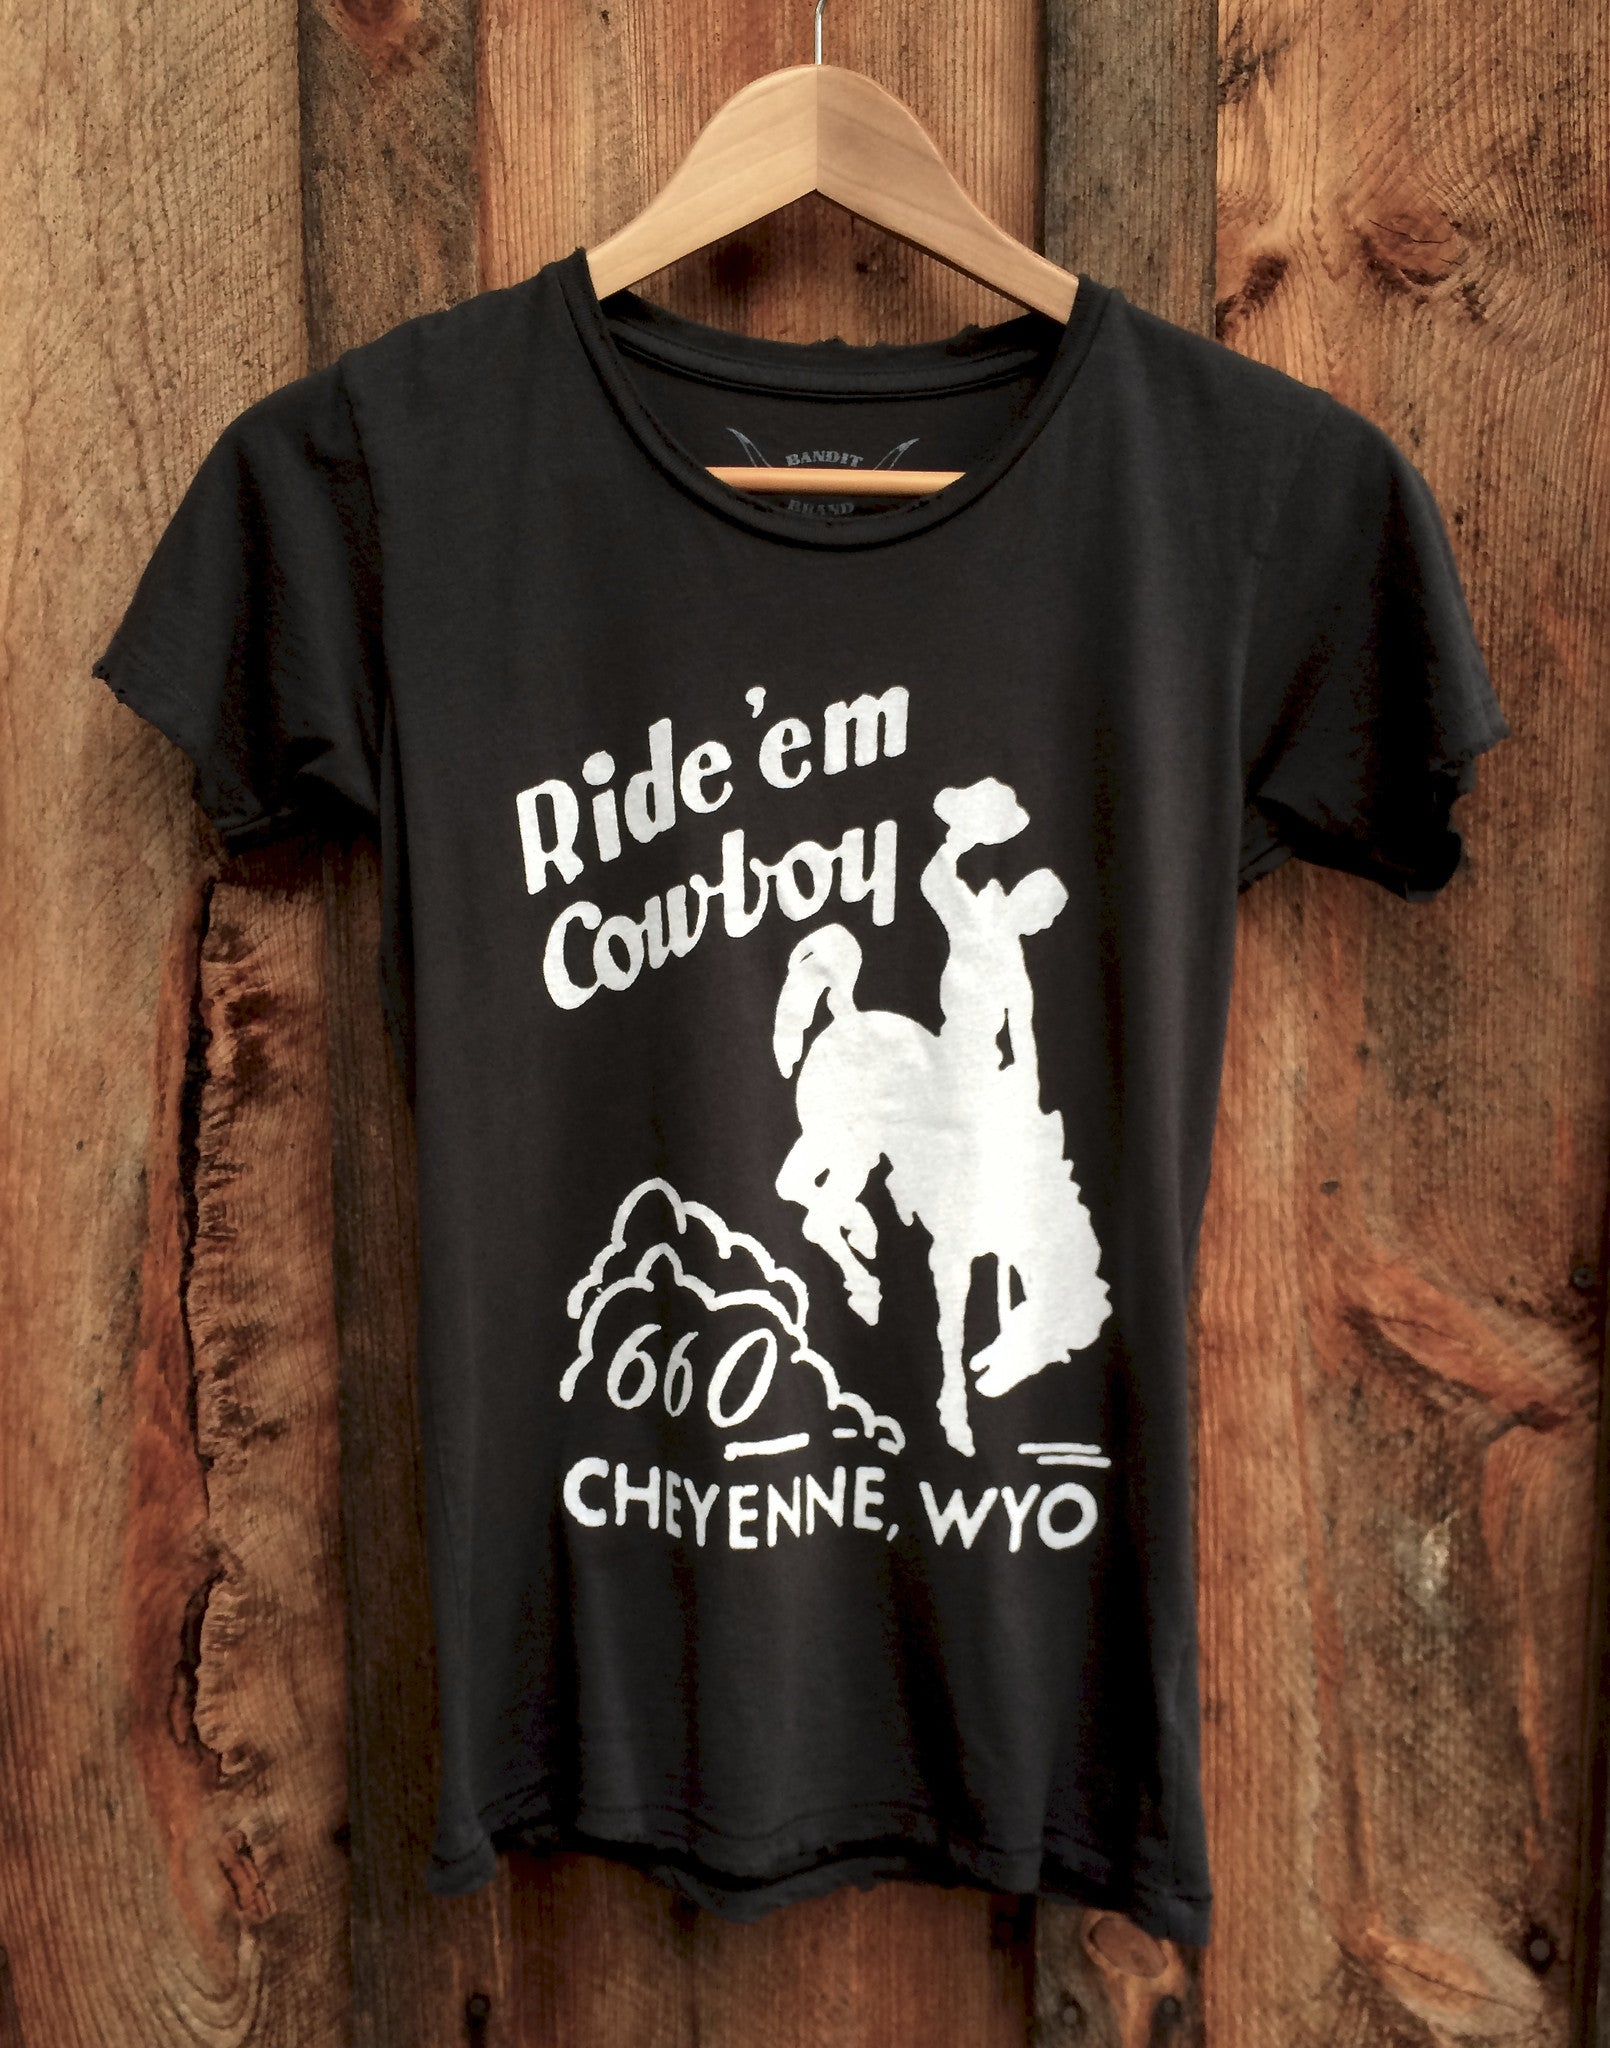 Ride'em Cowboy Women's Vintage Tee Black/White